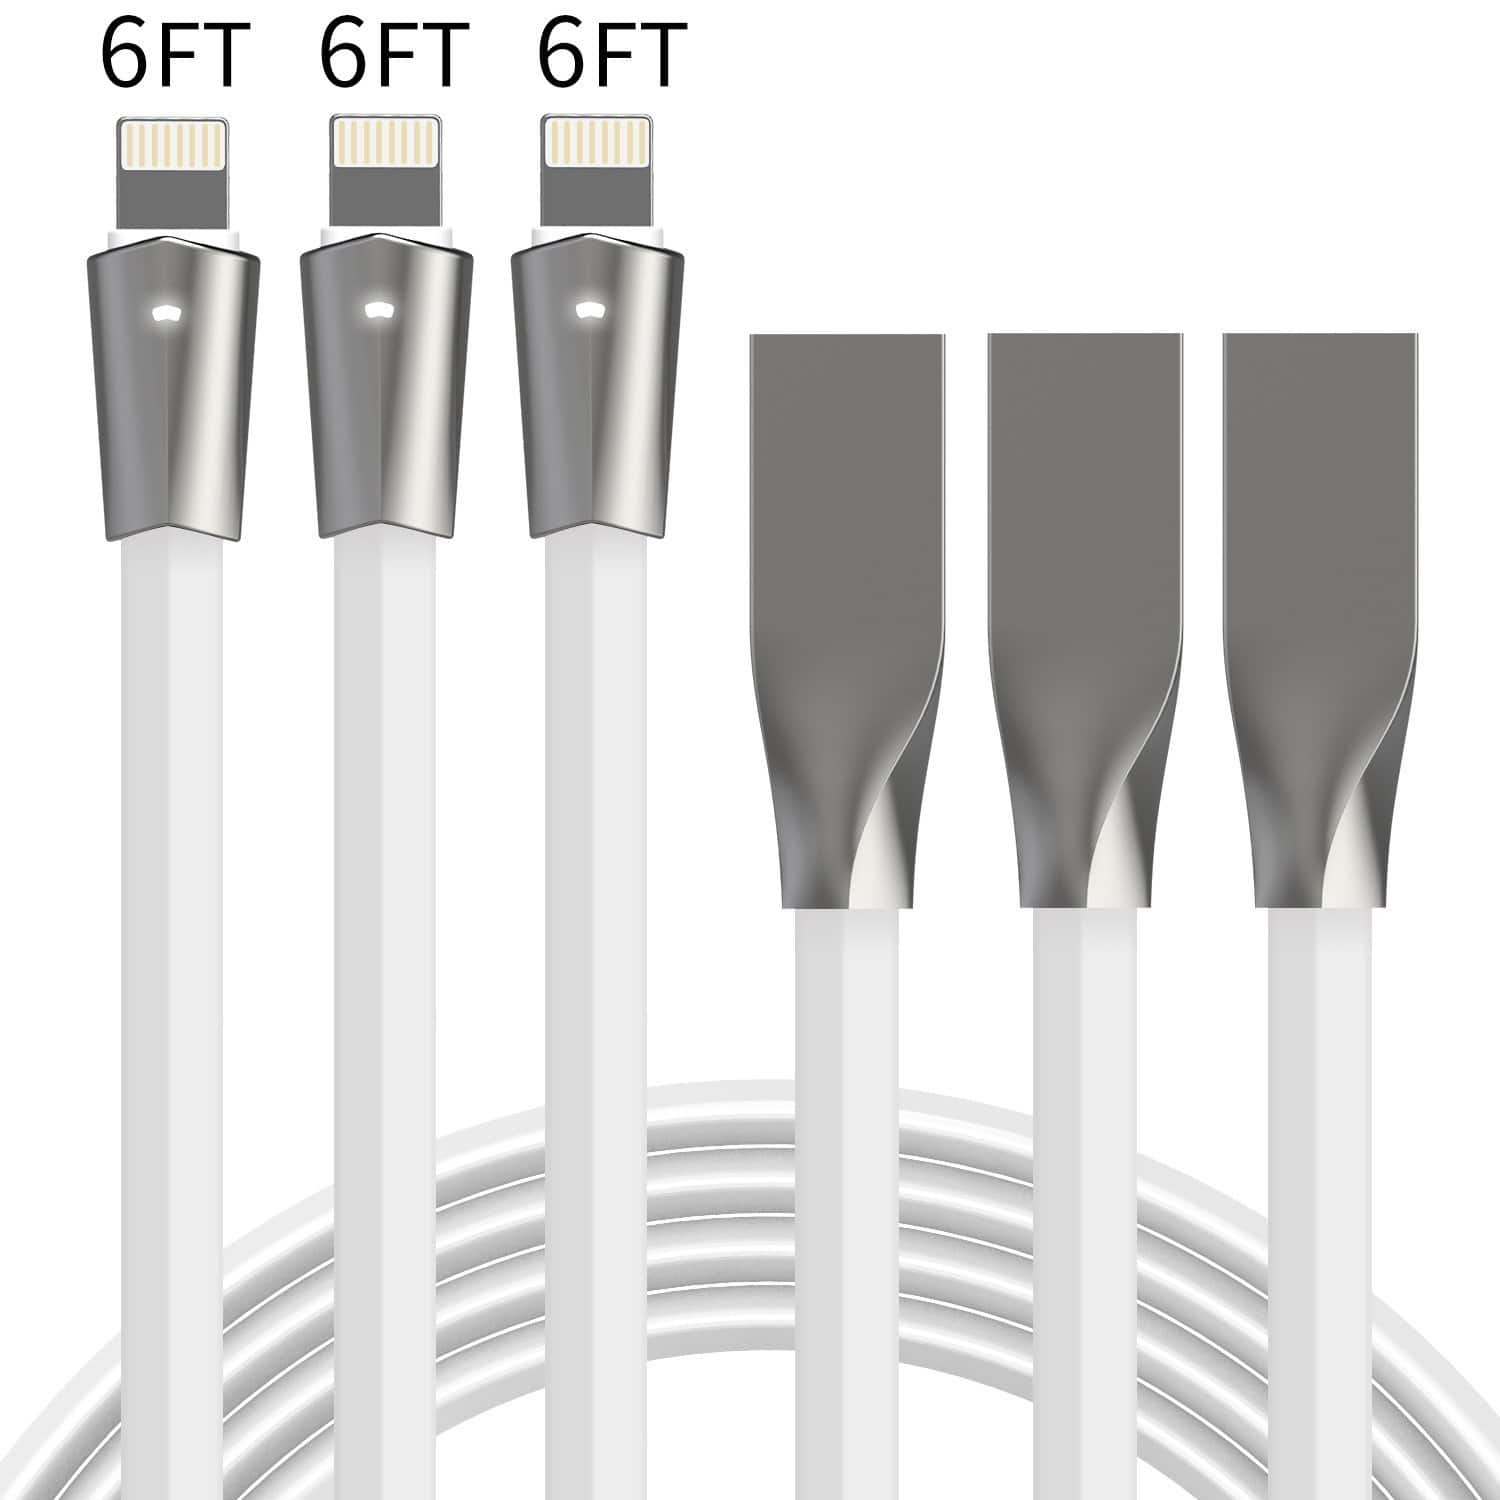 3 Pack 6FT Lightning Cable iPhone Charger  W/ LED Light Flat Lighting to USB Fast Charging Cord $6.60